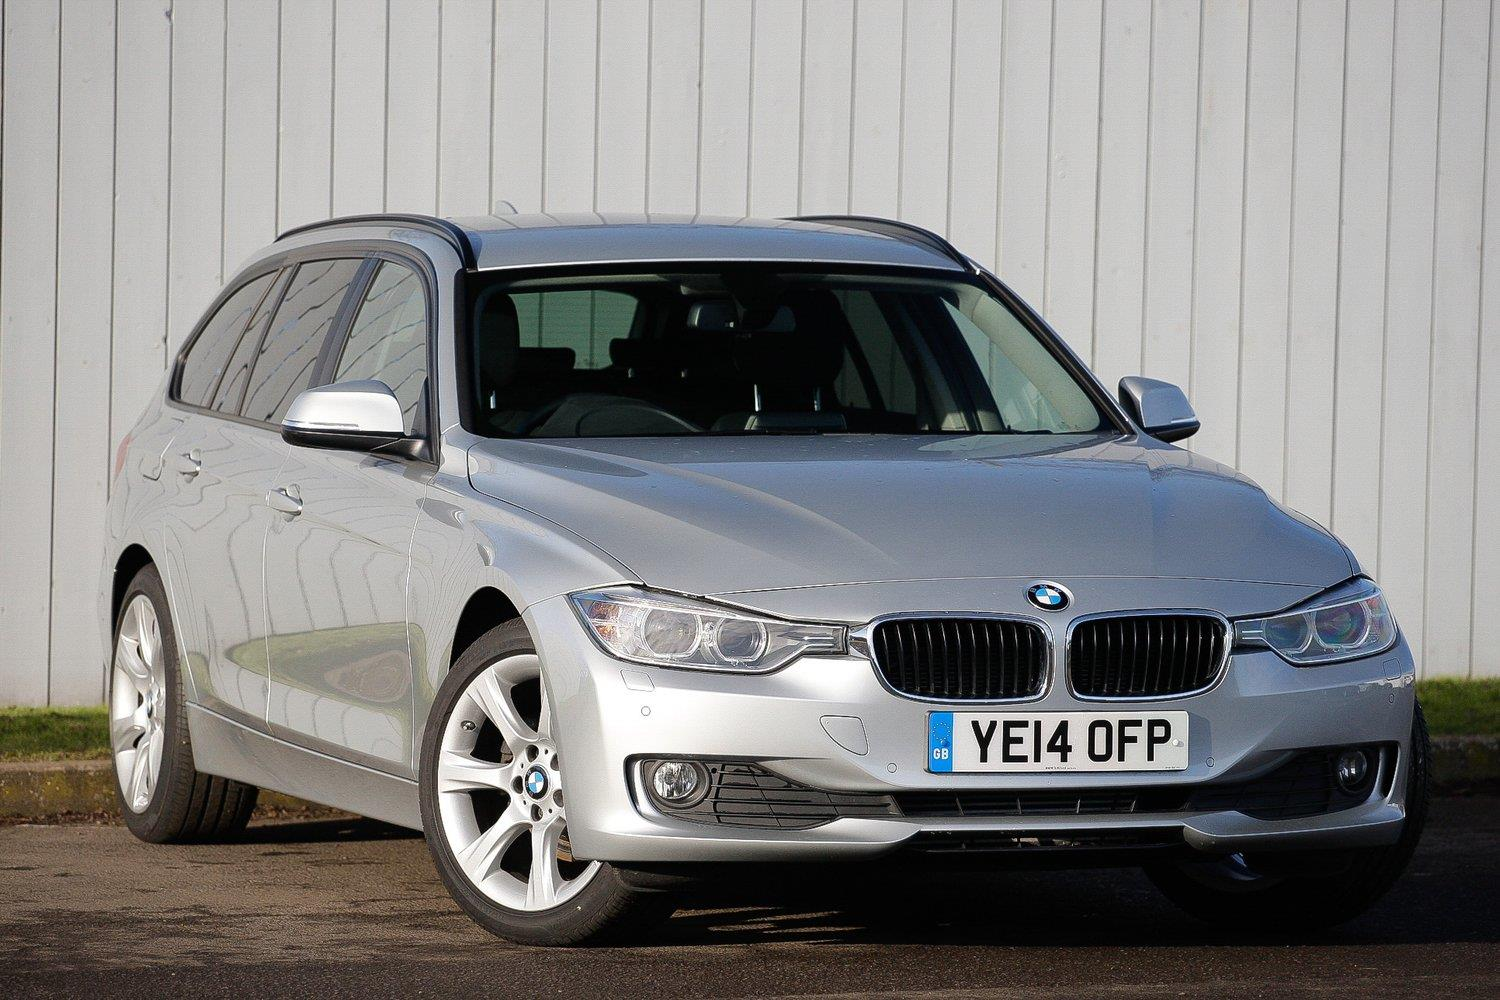 BMW 3 Series Touring YE14OFP - Image 9